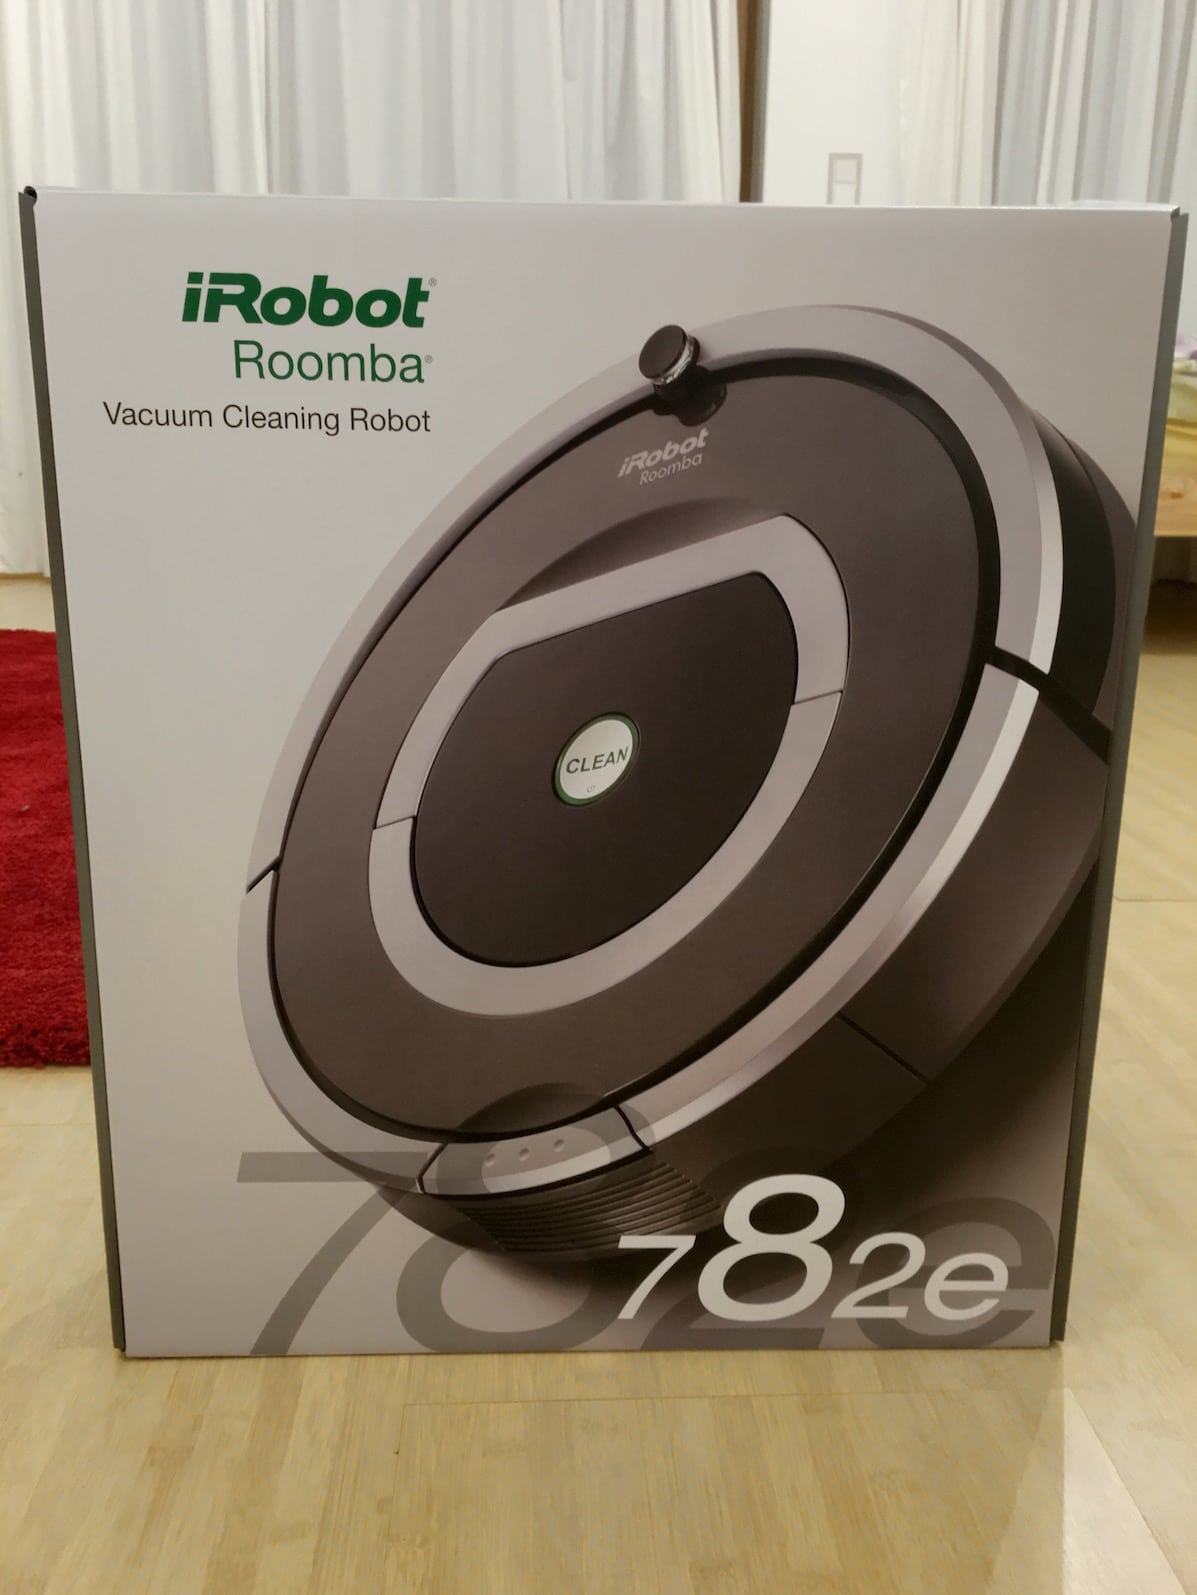 irobot roomba 782 saugroboter verpackung front. Black Bedroom Furniture Sets. Home Design Ideas